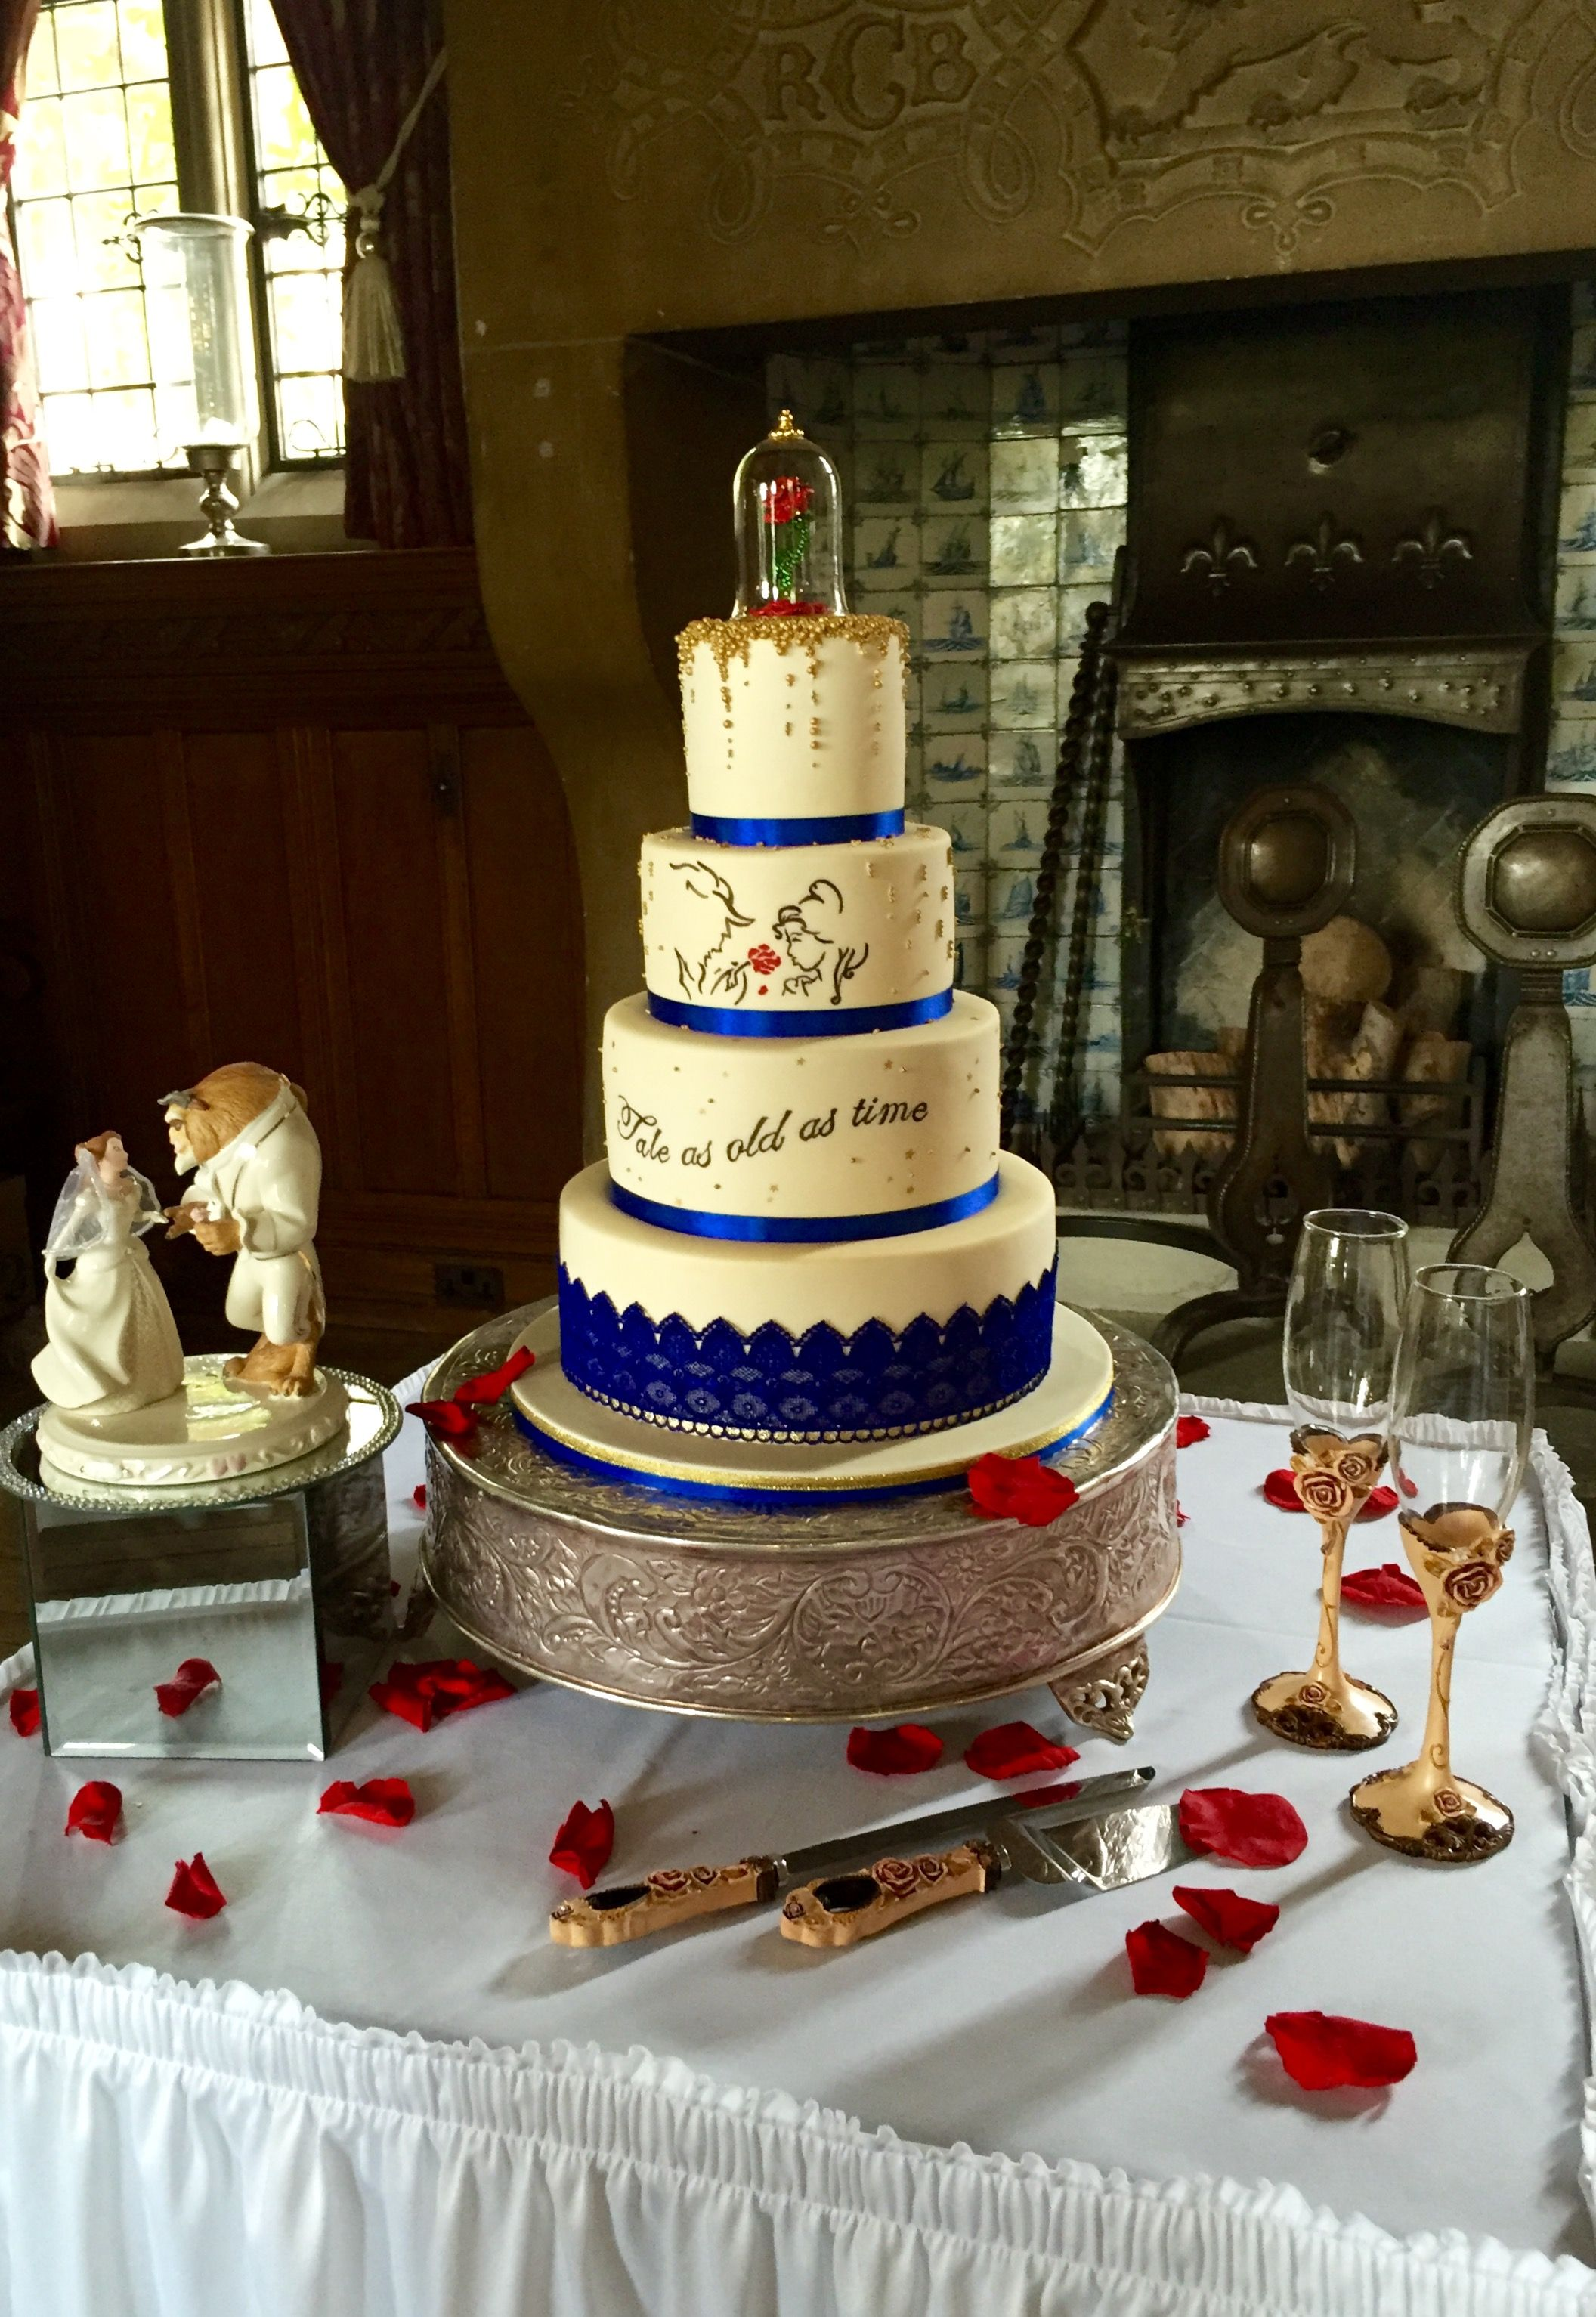 wedding cake beauty and the beast and the beast wedding cake today for johnson and 22000